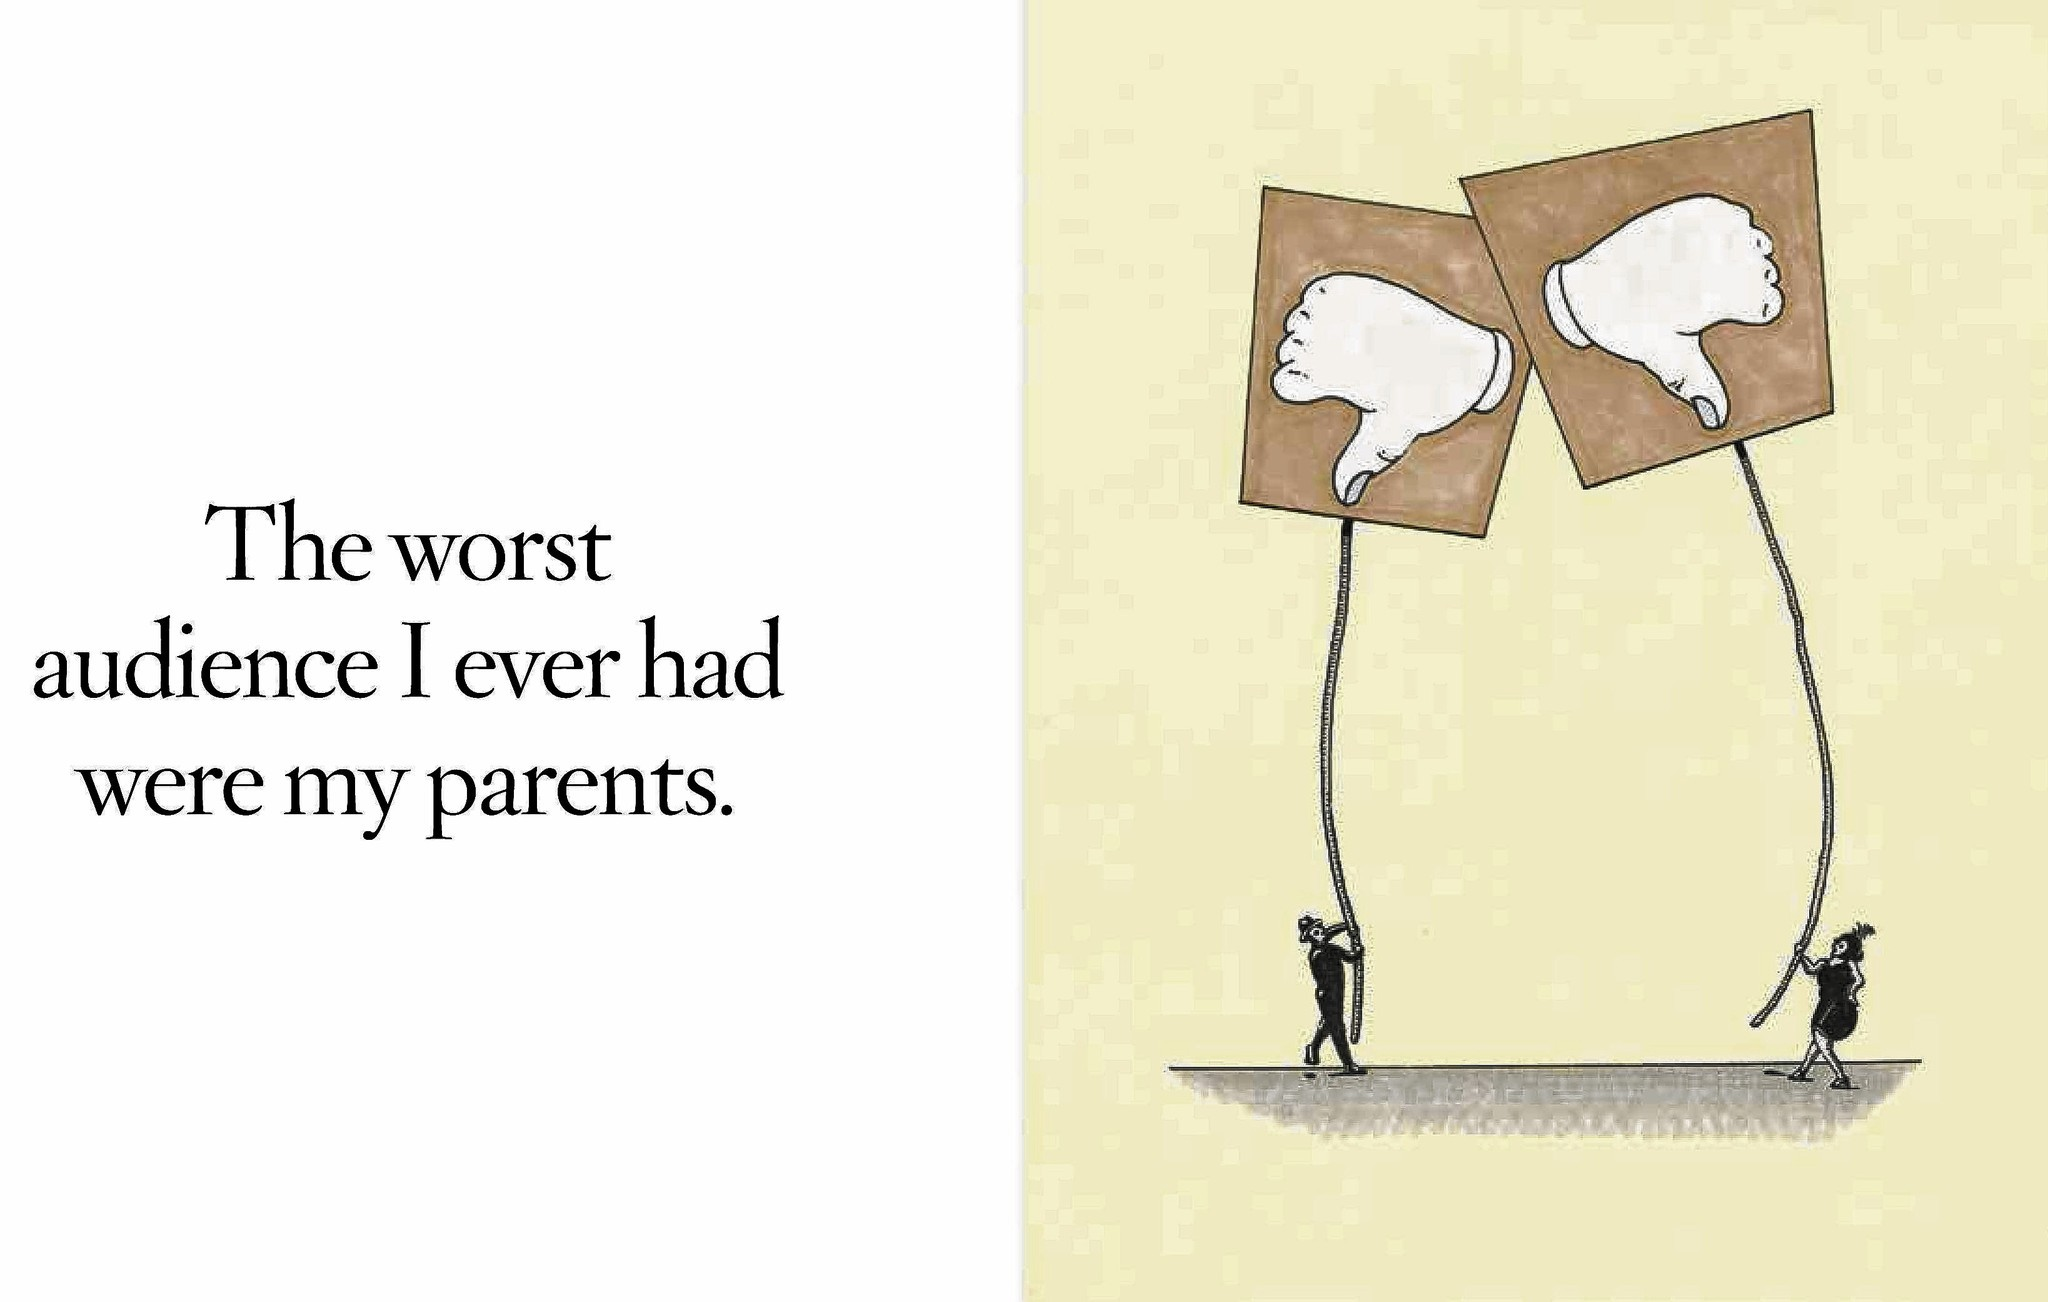 The worst audience I ever had were my parents' - Baltimore Sun